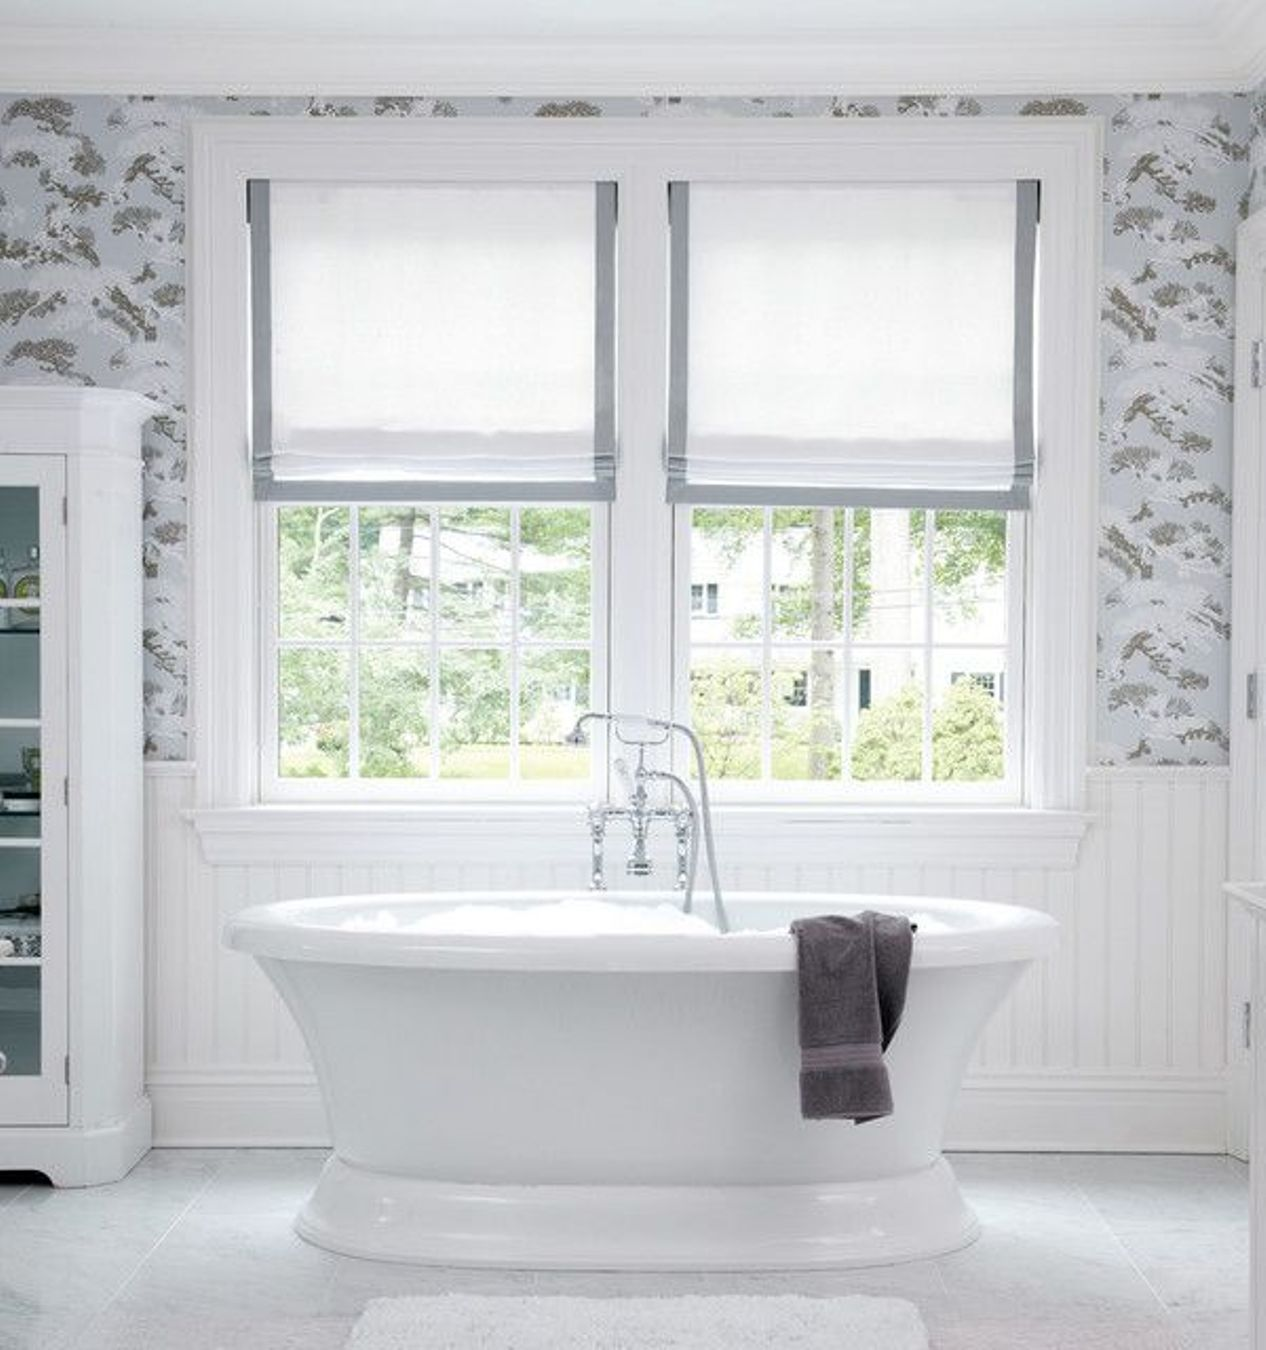 Modern bathroom window curtain ideas - Gallery Of Pretentious Bathroom Curtain Ideas